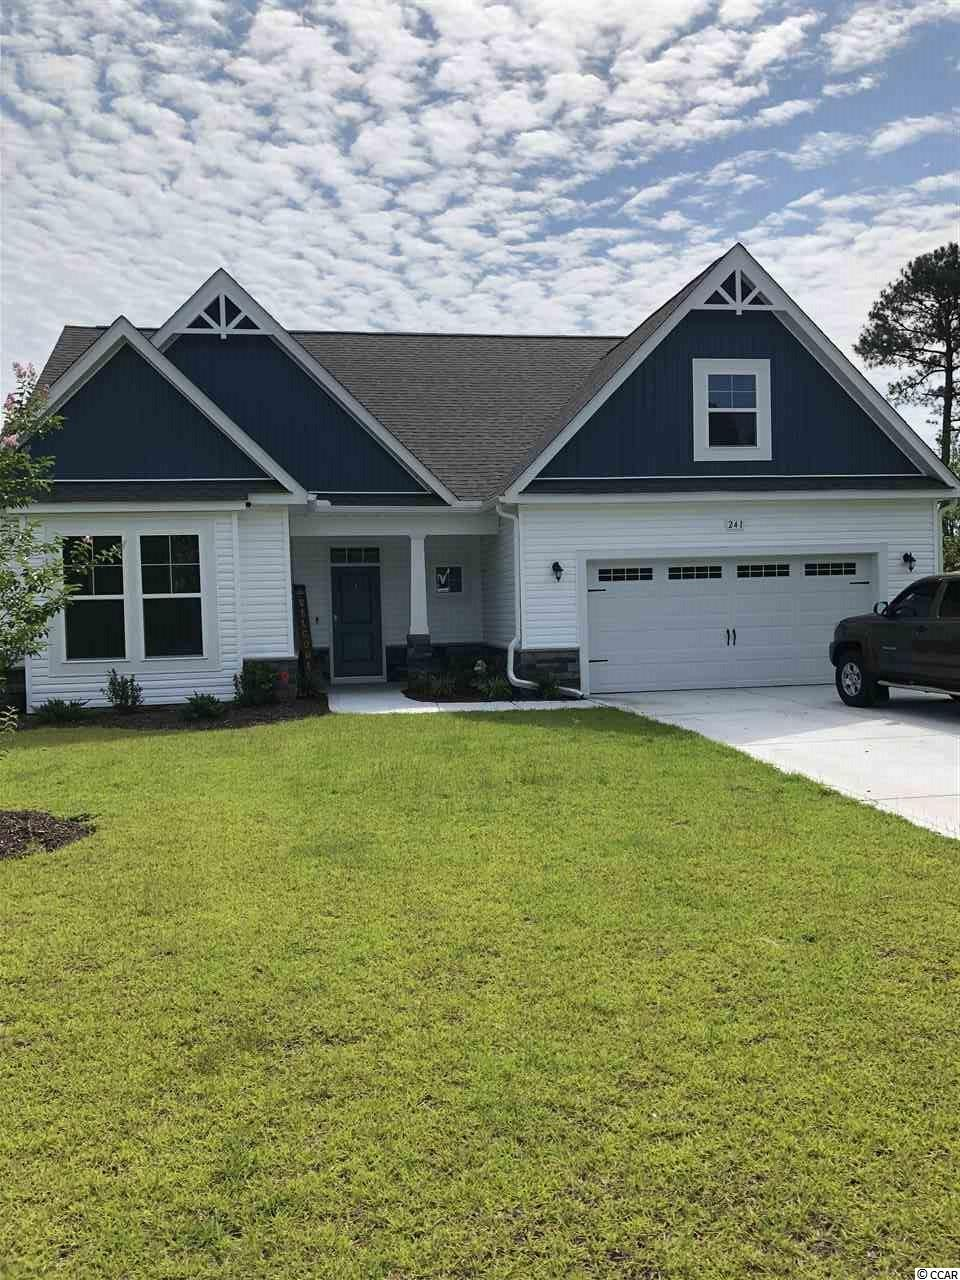 """Come see Astoria Park, Newest Natural Gas Community in South Carolina.  The Wrightsville can be built as a 1 or 2 story home and boasts a wide open floor plan with huge center island in kitchen with granite counter tops. 4 bedrooms, 3 baths backing up to the trees!  Pictures are representations of similar home built.  THE H&H ADVANTAGE Energy Saving Features • ecoSelectTM Certification • TRANE® 14 Seer Energy Efficient HVAC System with Variable Speed Air Handler & Programmable Thermostats • 95% Efficient Gas Furnace • HVAC Fresh Air Intake & Upgraded 80 CFM Bath Fans • 40 Gallon Gas Water Heater • Insulated & Weather Stripped Pull Down Attic Stairs/Plan Peace of Mind Features • 400 Point Quality Assurance Program conducted by an Experienced Third Party Licensed Home Inspector • 2-10 Home Buyer's Warranty & Online Service Requests • GEMS Great Expectation Management System • Taexx®: Built-in Pest Control System (*quarterly pest service not included) • Sentricon Termite Colony Elimination System (*first year semi-annual included) EXTERIOR FEATURES • 30 Year Architectural Shingles • Low Maintenance Vinyl Siding • Professional Landscaping Package with Sod to Front Corners of Home  • Kwikset Brushed Nickel Lockset with Deadbolts • Masonite® Fiberglass Insulated Front Door (per plan) • Vinyl, Low-E, Insulated Windows w/Panes Per Plan • 2 Exterior Hose Bibs & Electrical Receptacles • Aluminum Gutters with Splash Blocks Wrap the Home INTERIOR FEATURES Designer Kitchen • Granite Countertops with 8"""" Stainless Under Mount Sink • Cabinets: Staggered Height, Flat Panel  • Stainless Faucet w/pullout Spray • 1/3 Horse Power Disposal • Frigidaire Appliances: Stainless Steel, Smooth Top, Self-Cleaning Electric Range, Over the Range Microwave & Dishwasher INTERIOR FEATURES (continued) Flooring • Mohawk Mohawk 5"""" Bourbon Mill Laminate Floors in Foyer • Vinyl in all Baths and Laundry • Mohawk Carpet with 6 lb. pad Bathrooms • Garden Tub in Master Bath and Separate Walk in Fiberglass Sh"""